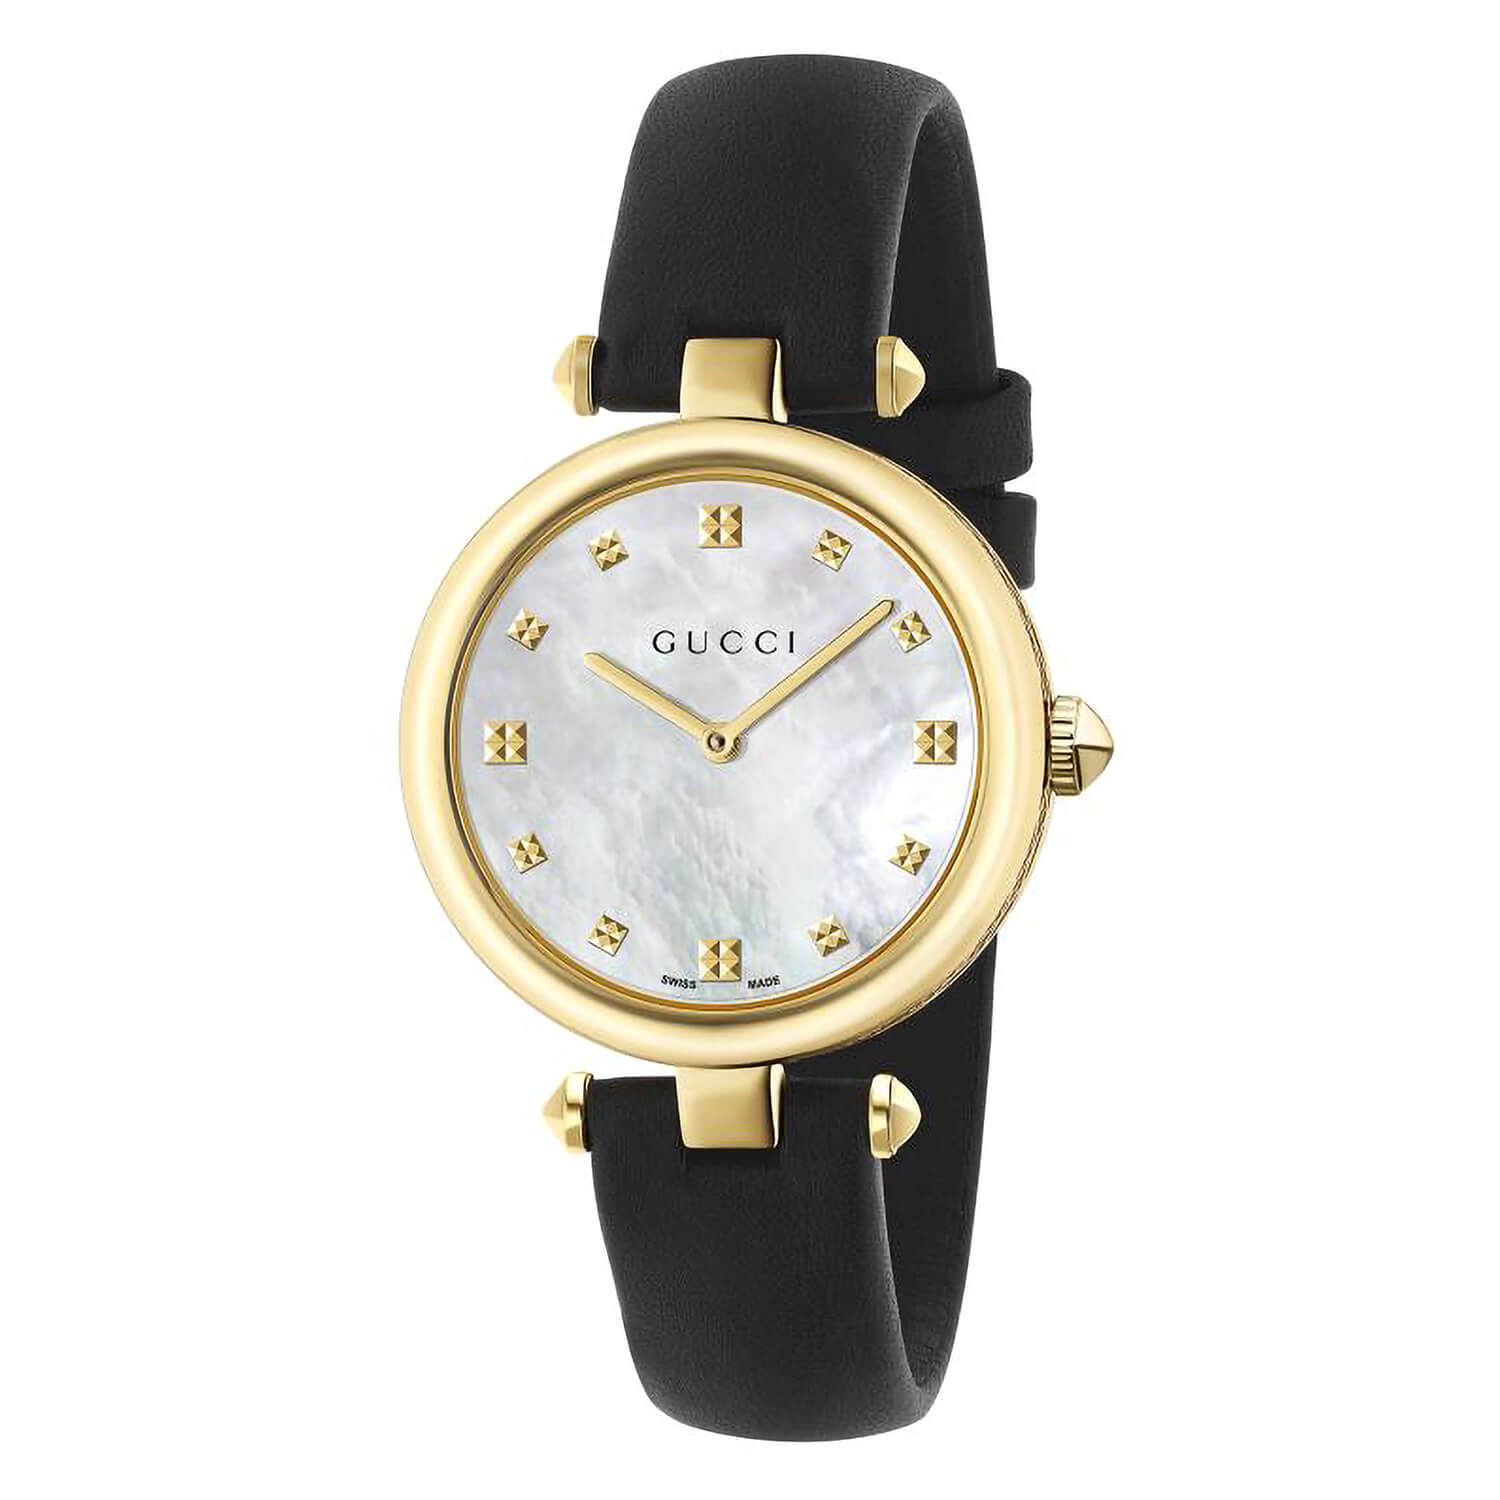 Gucci Diamantissima Ladies' Gold-Tone and PVD Black Leather Strap Watch